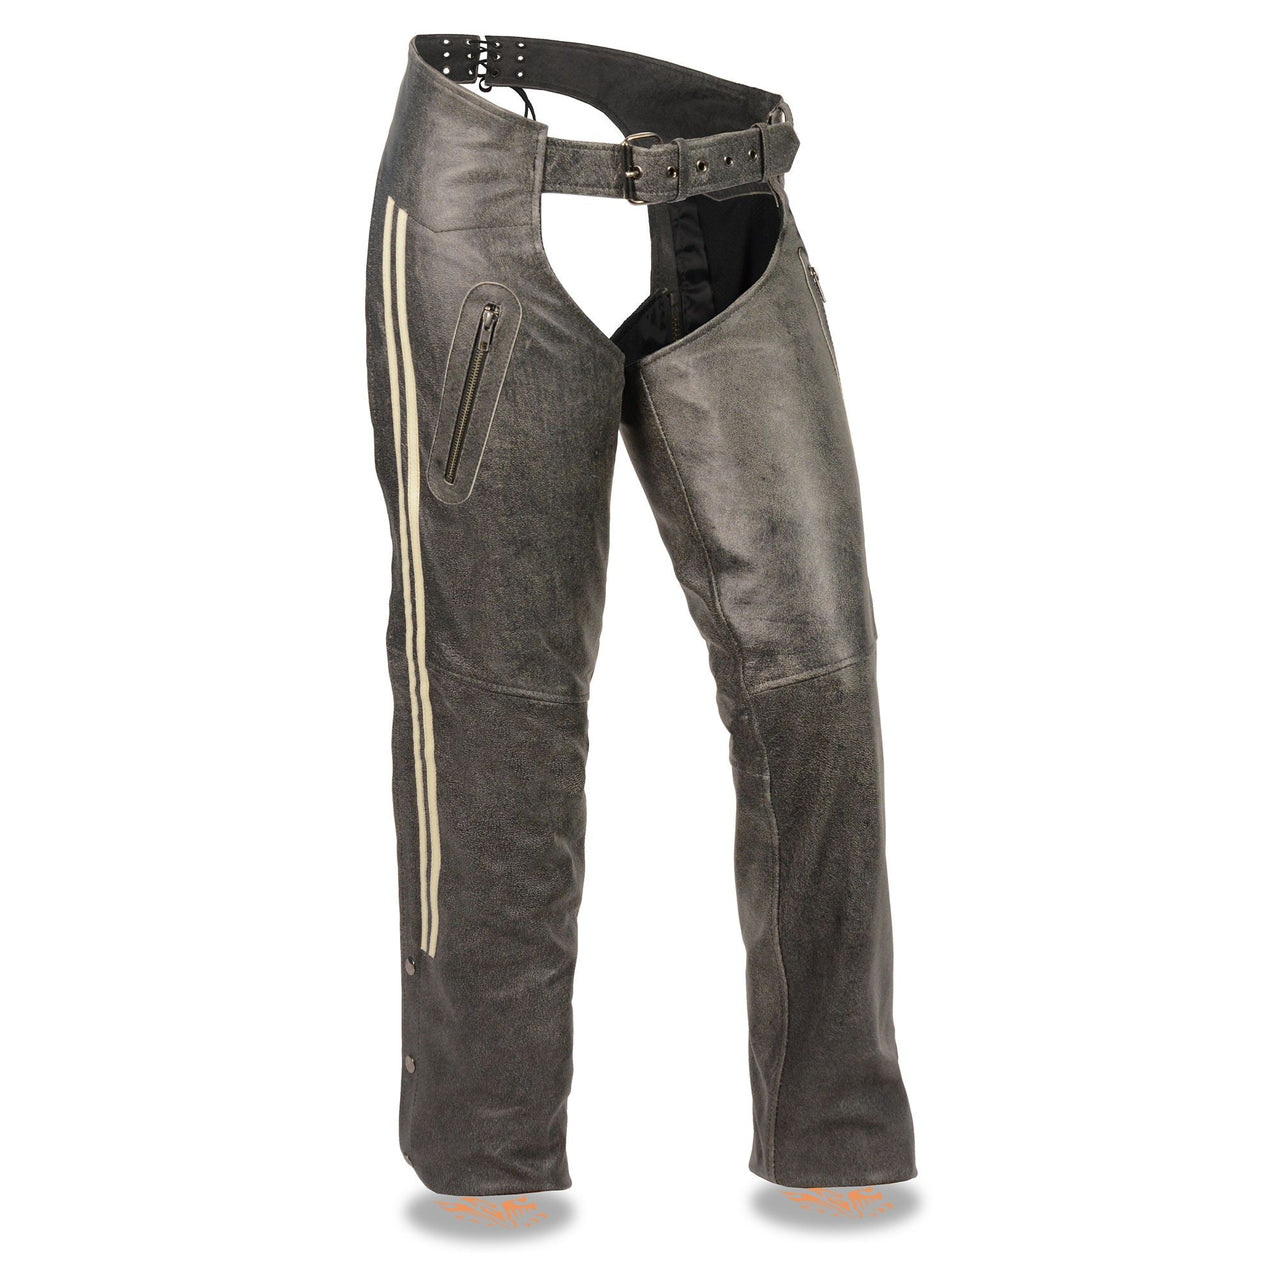 Women's Vintage Slate Chaps w/ Racing Stripes - HighwayLeather